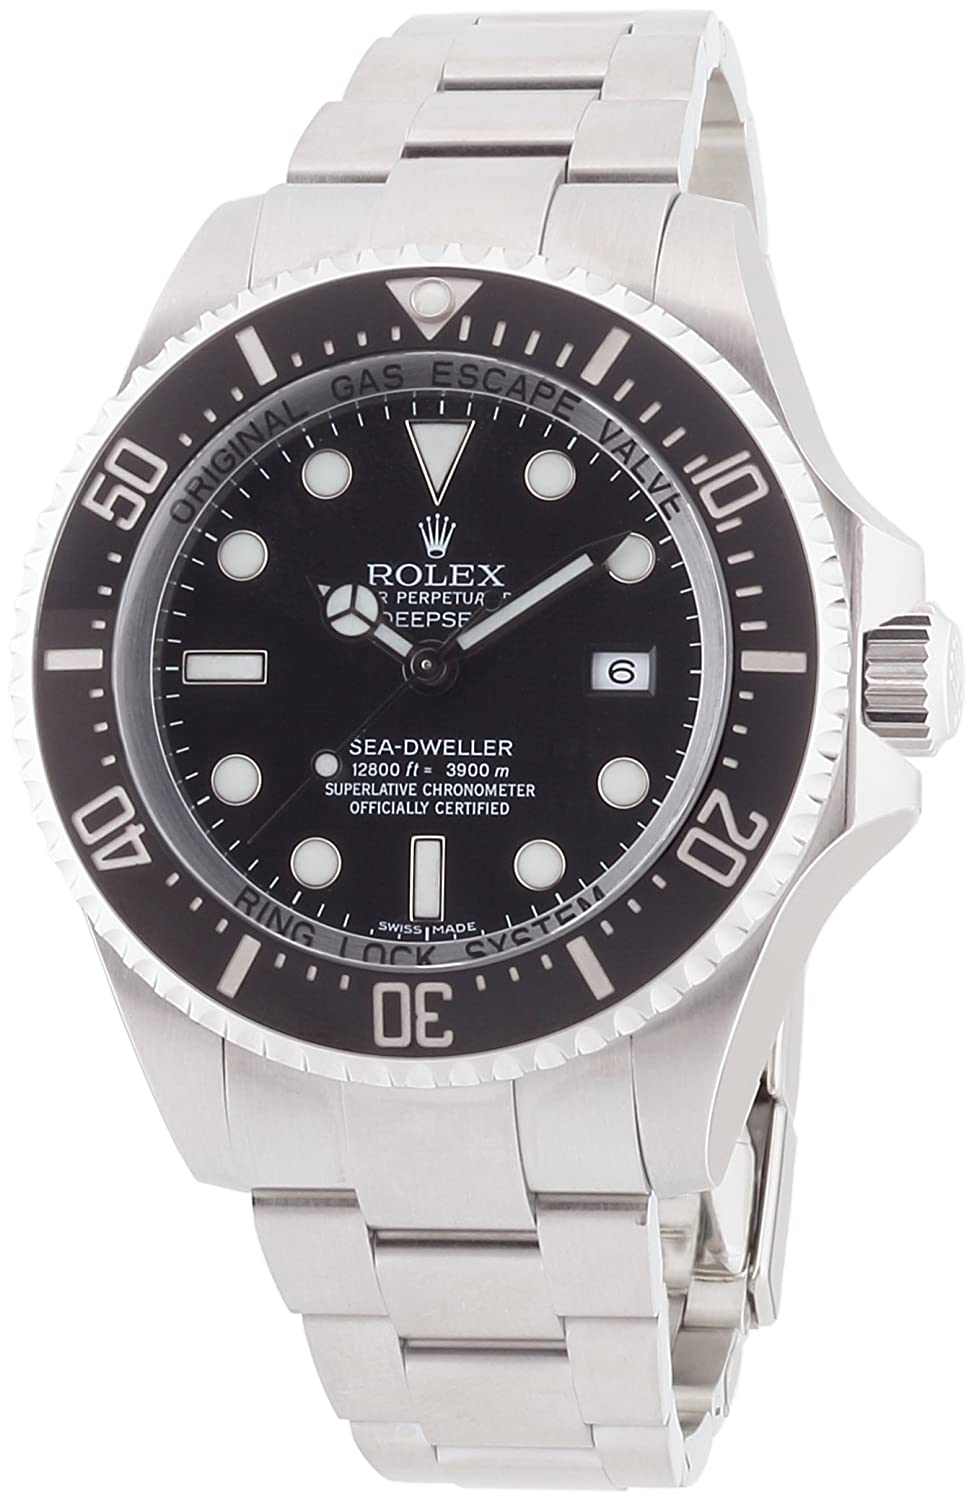 ROLEX Sea-Dweller Deep Sea Ref.116660